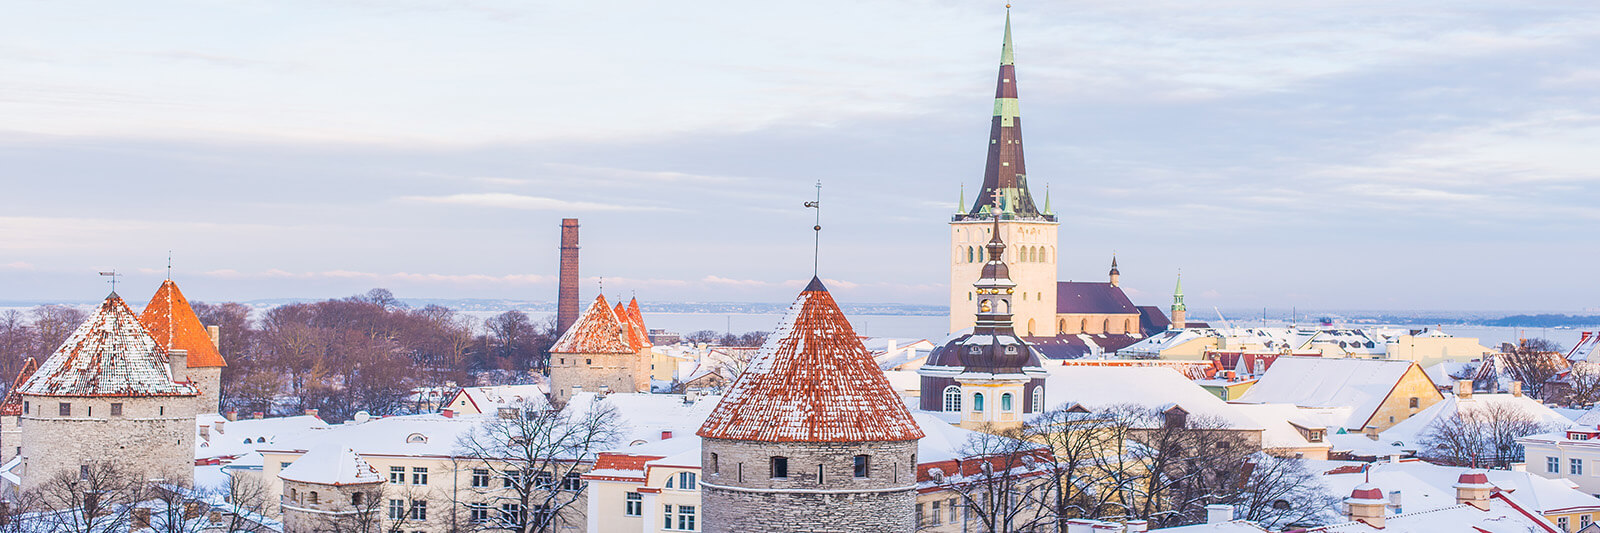 Did you know that the entire Old Town of Tallinn in Estonia is a UNESCO World Heritage Site